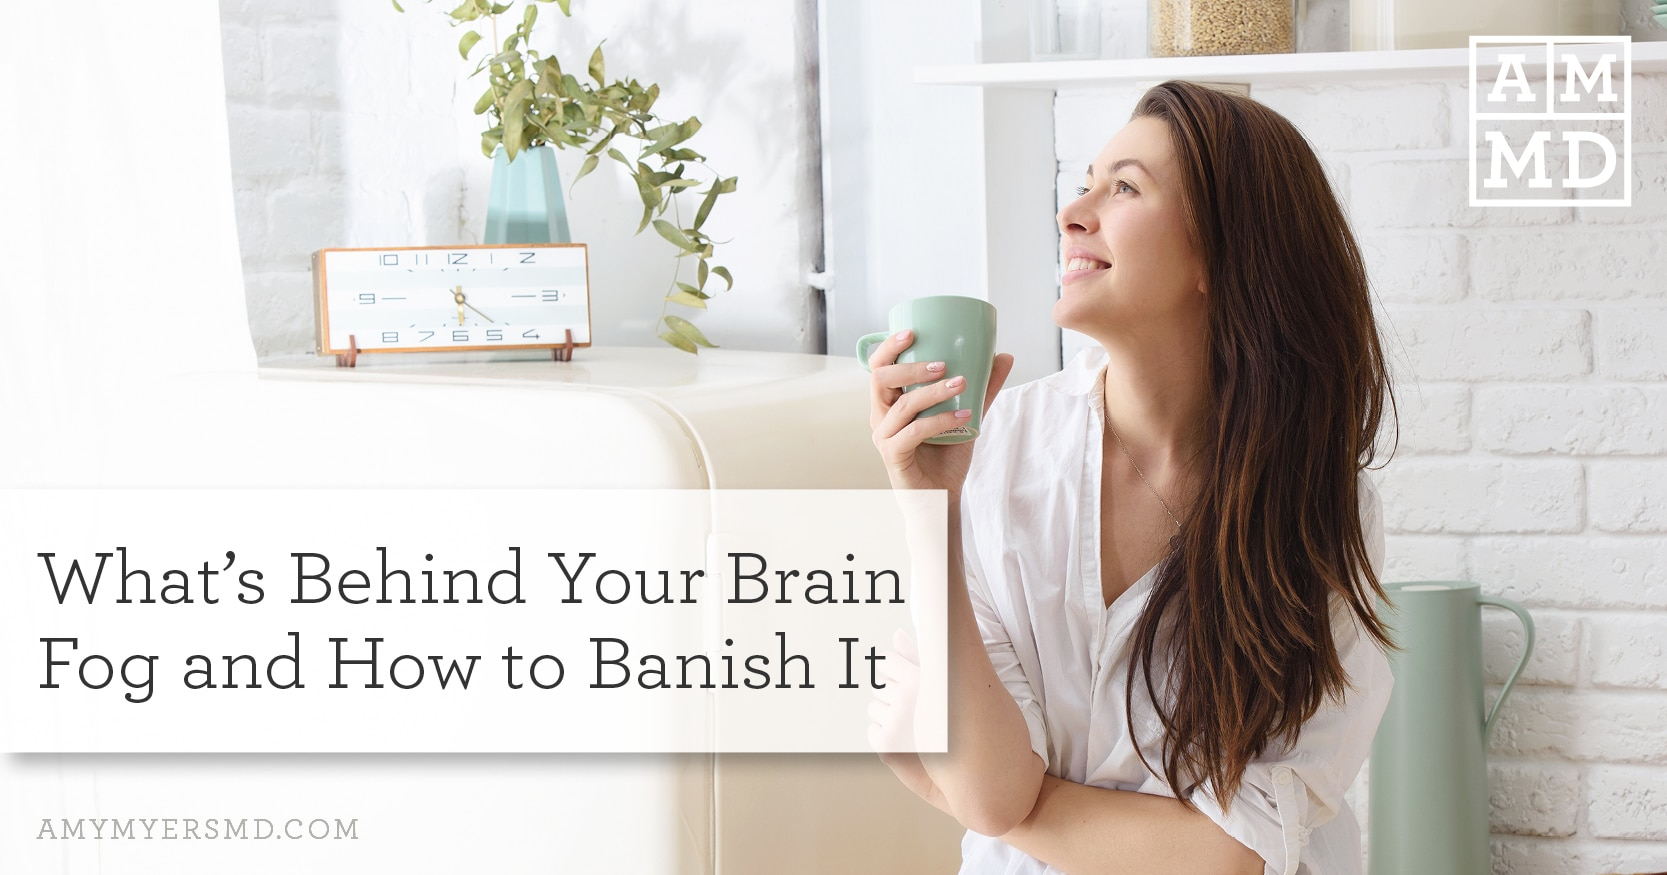 Brian Fog and how to Banish It - Featured Image - Woman Enjoying Coffee - Amy Myers MD